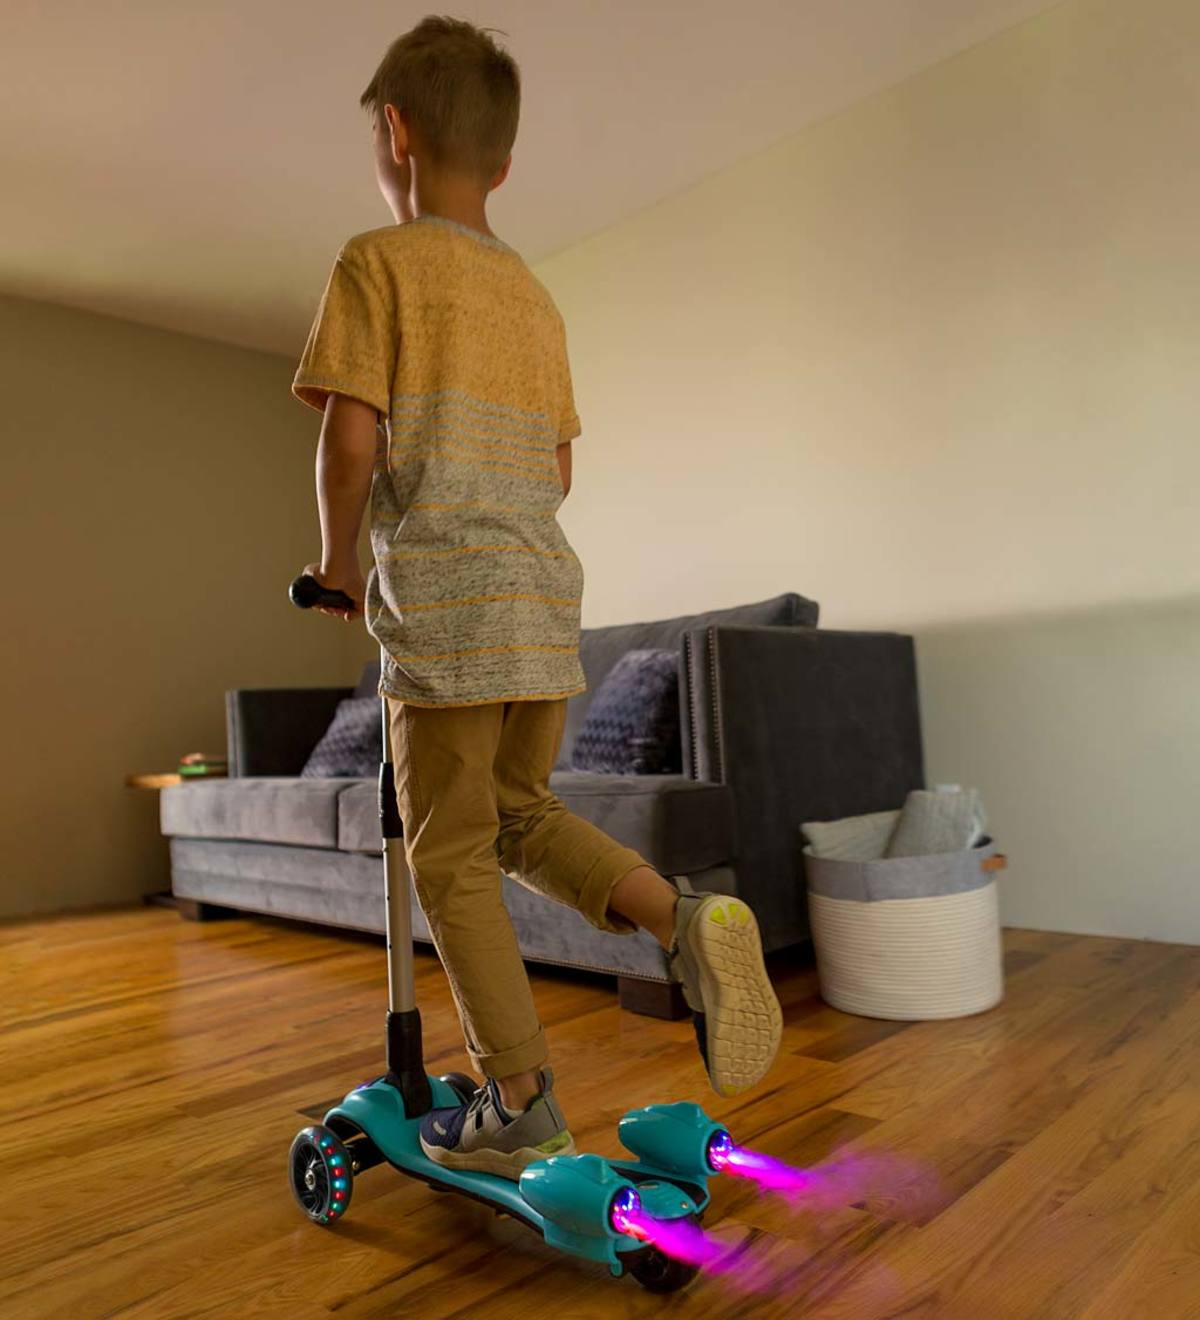 Adjustable-Height Folding Light Up Steam Scooter